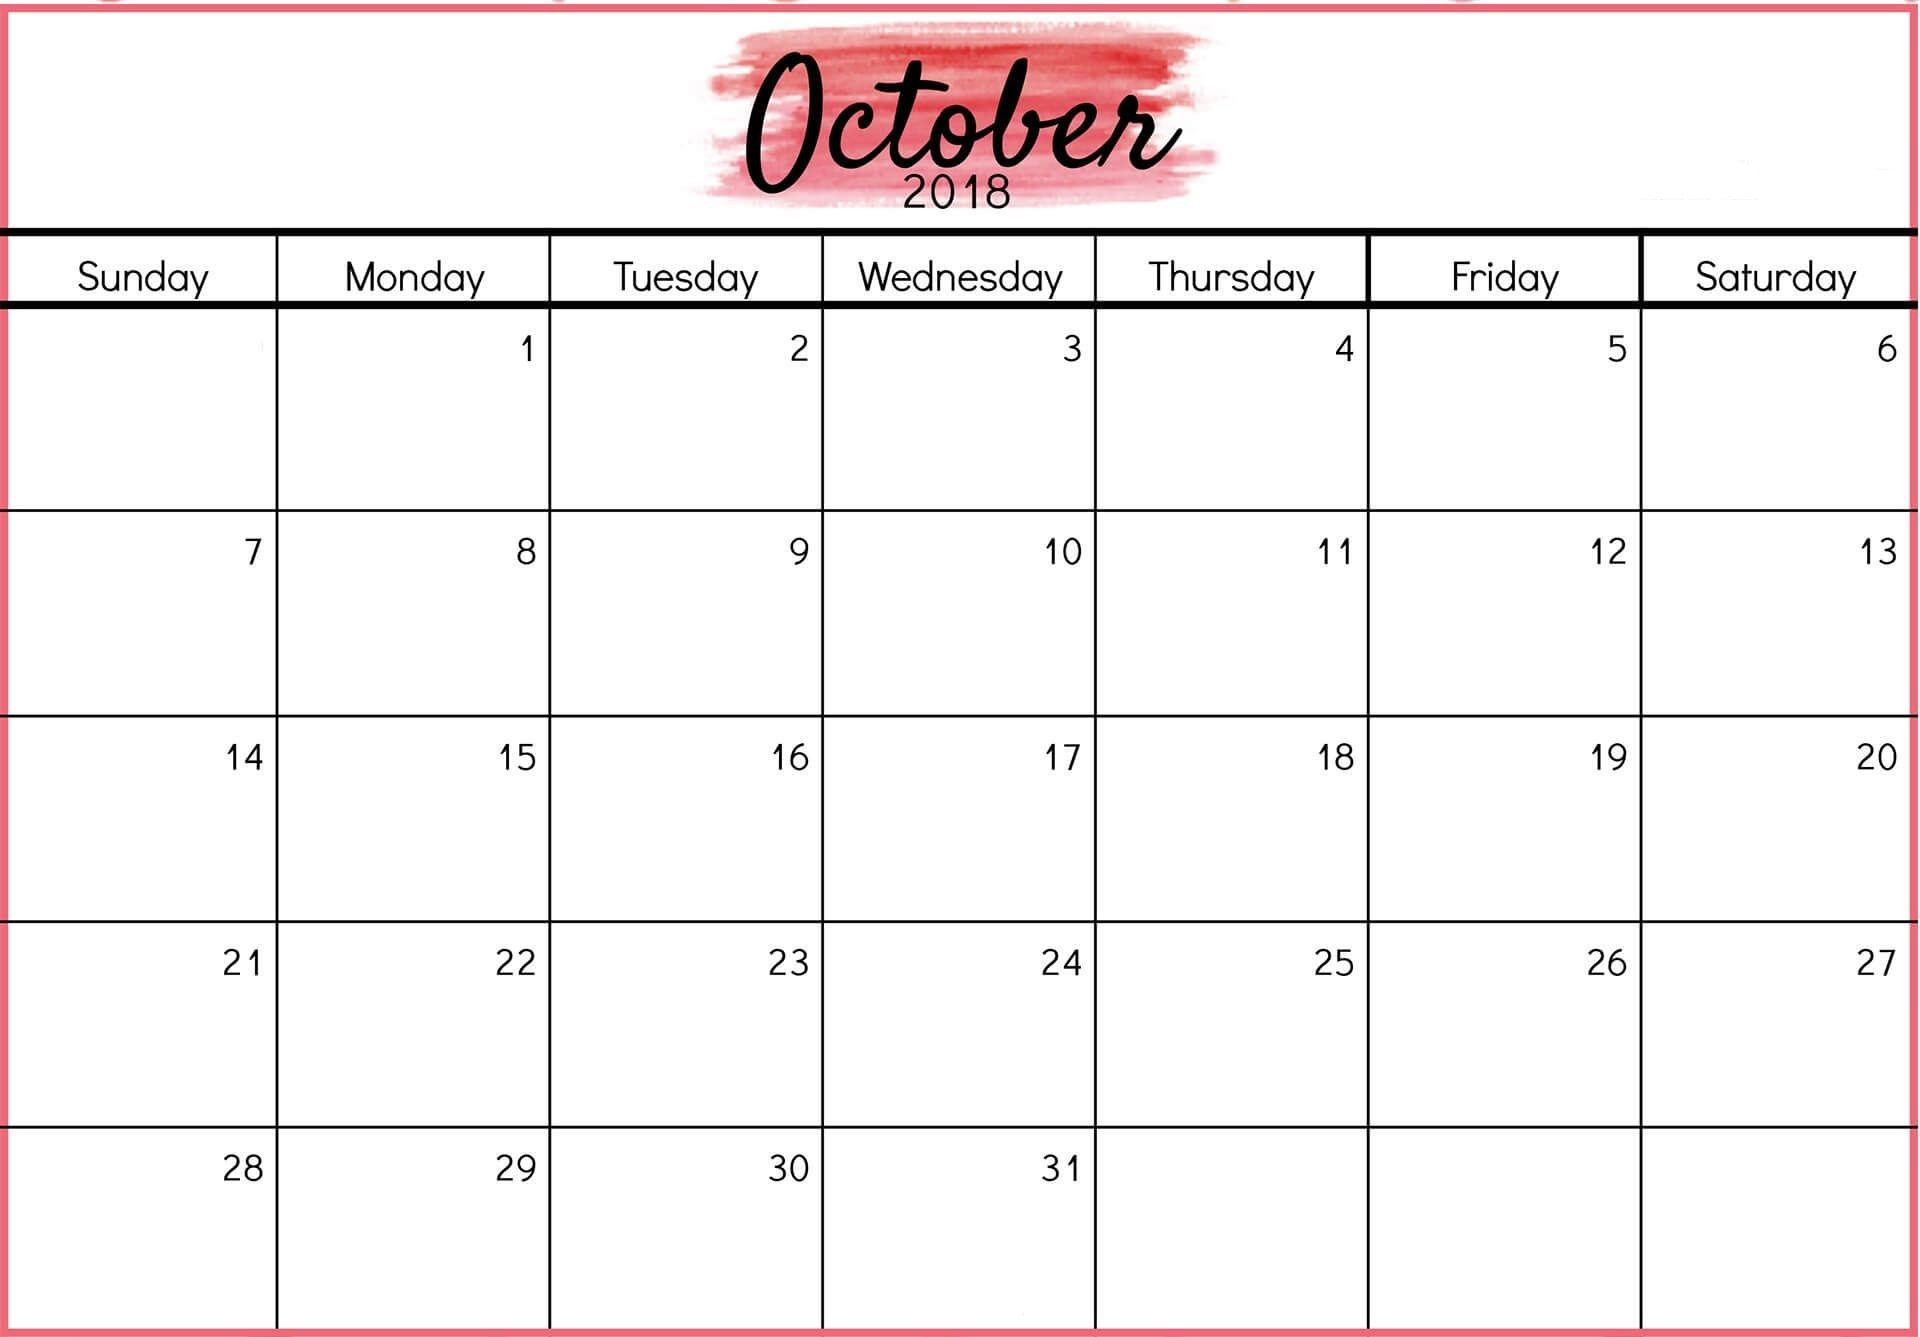 Como Imprimir Un Calendario En Word Mejores Y Más Novedosos Calendar October 2018 Word Doc October 2018 Calendar Of Como Imprimir Un Calendario En Word Recientes Calendario 2017